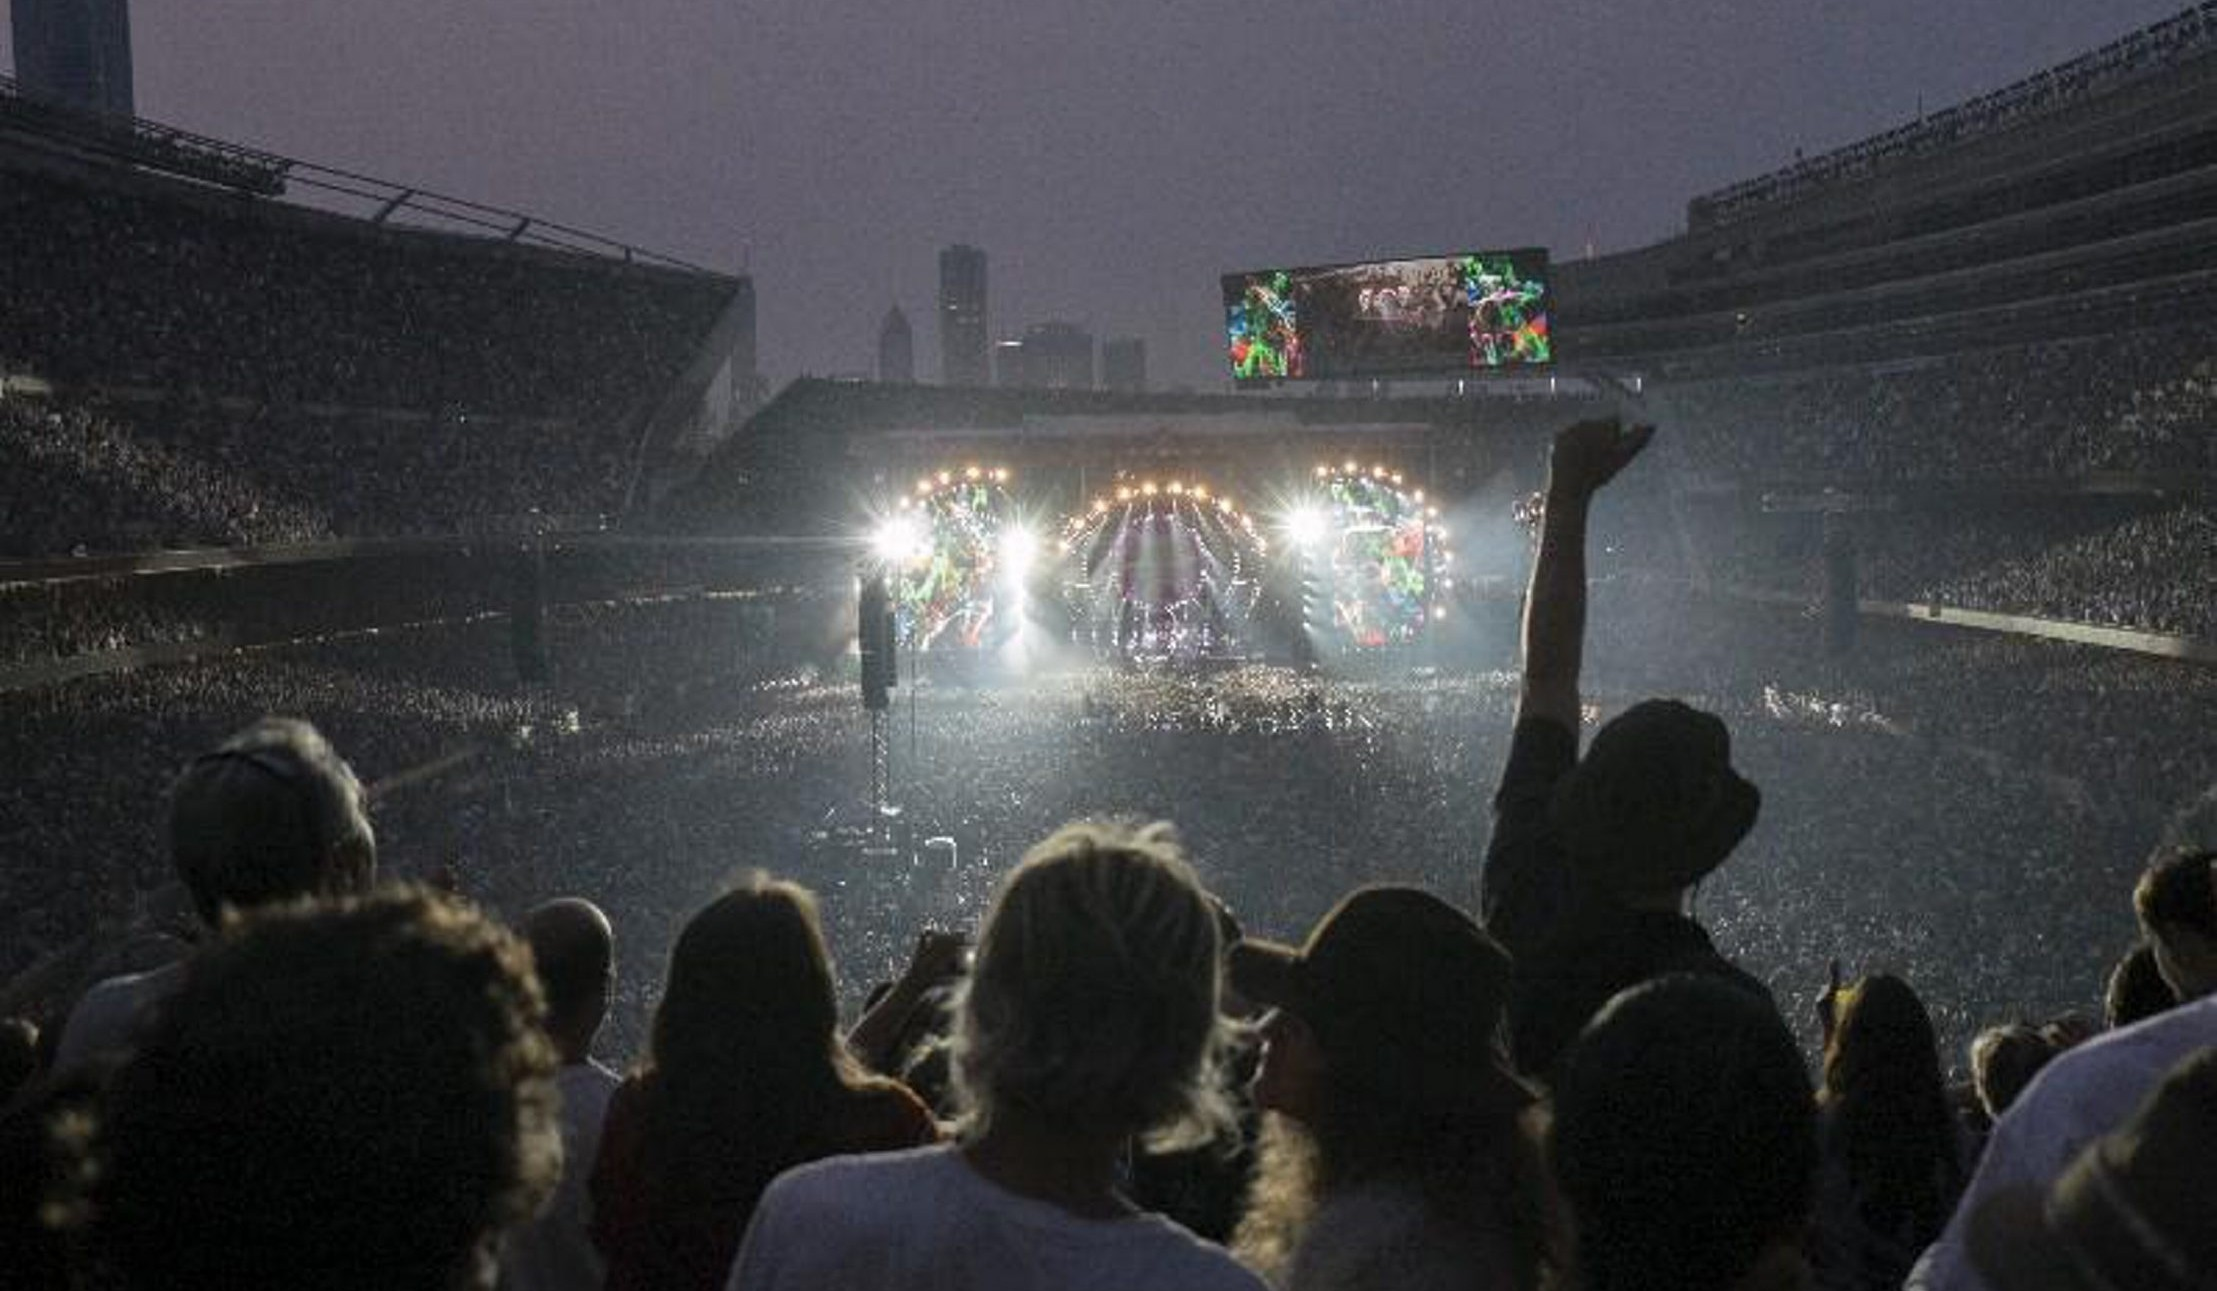 Fans cheer at the final Grateful Dead show at Soldier Field this summer. (Bryan R. Smith/The New York Times)